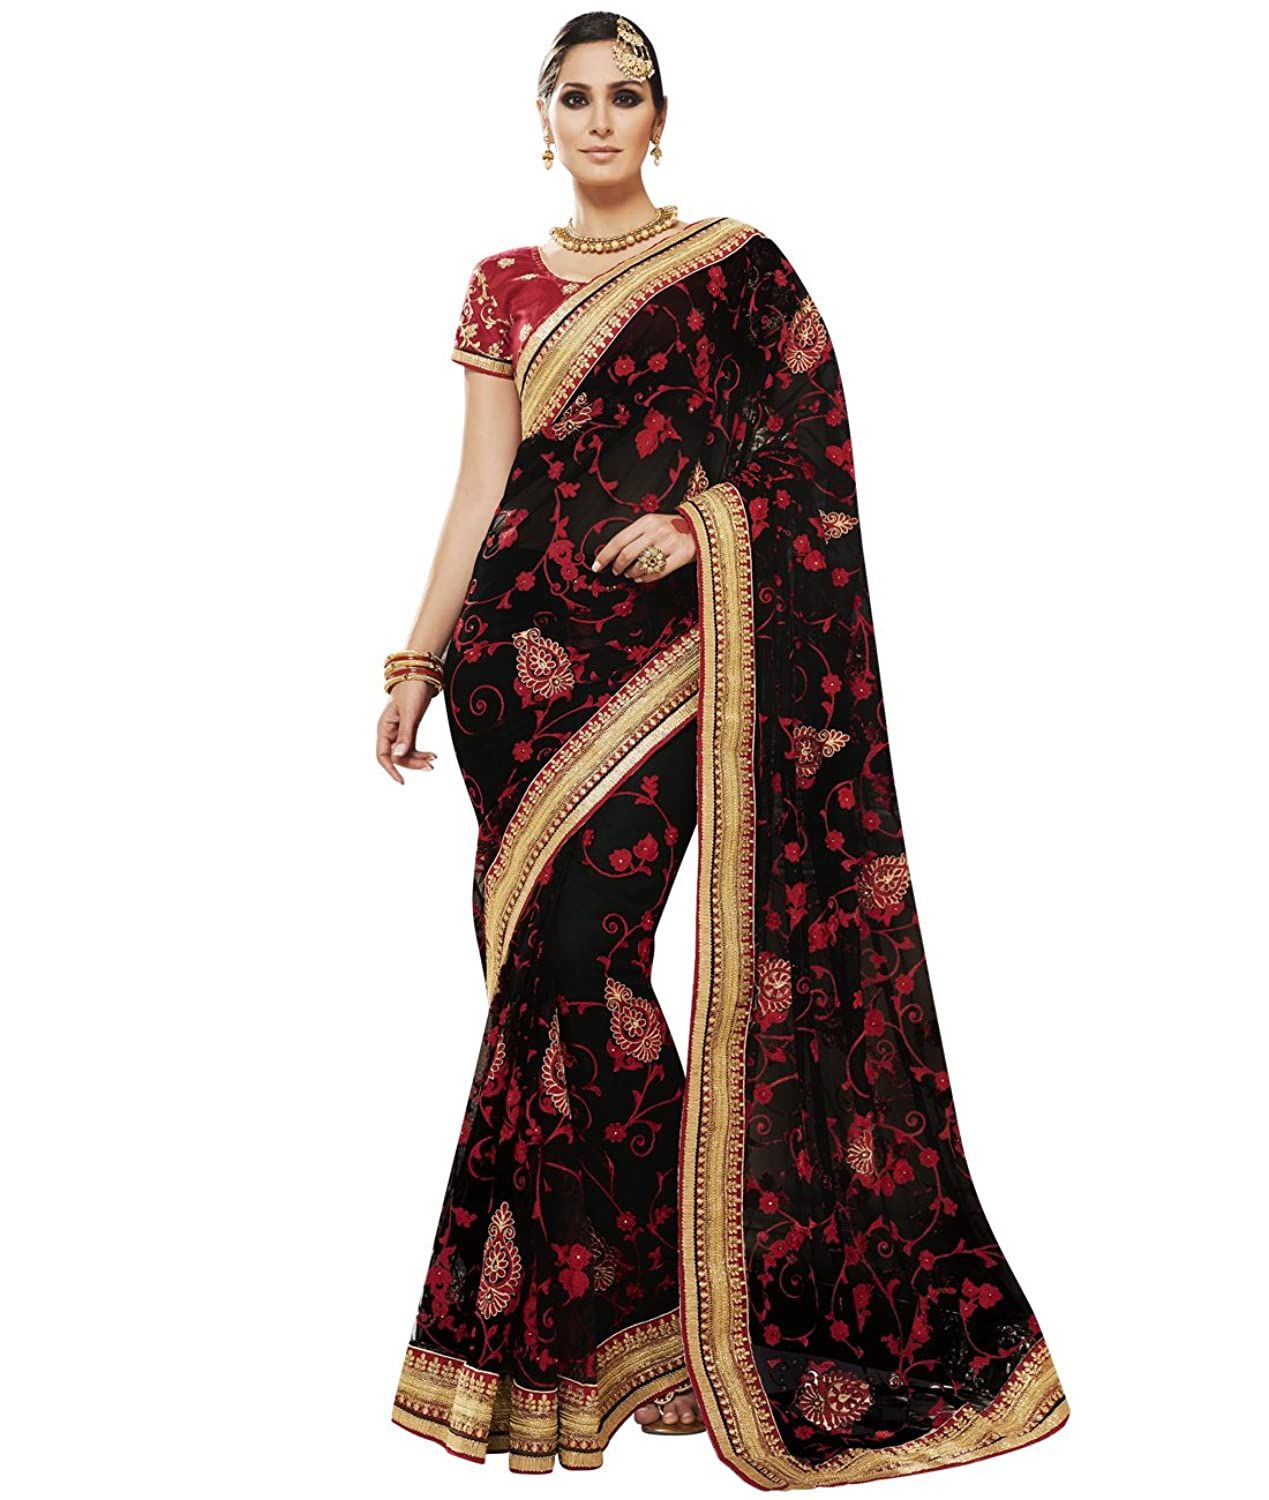 Indian Ethnic Faux Georgette Black Bridal and Wedding Saree